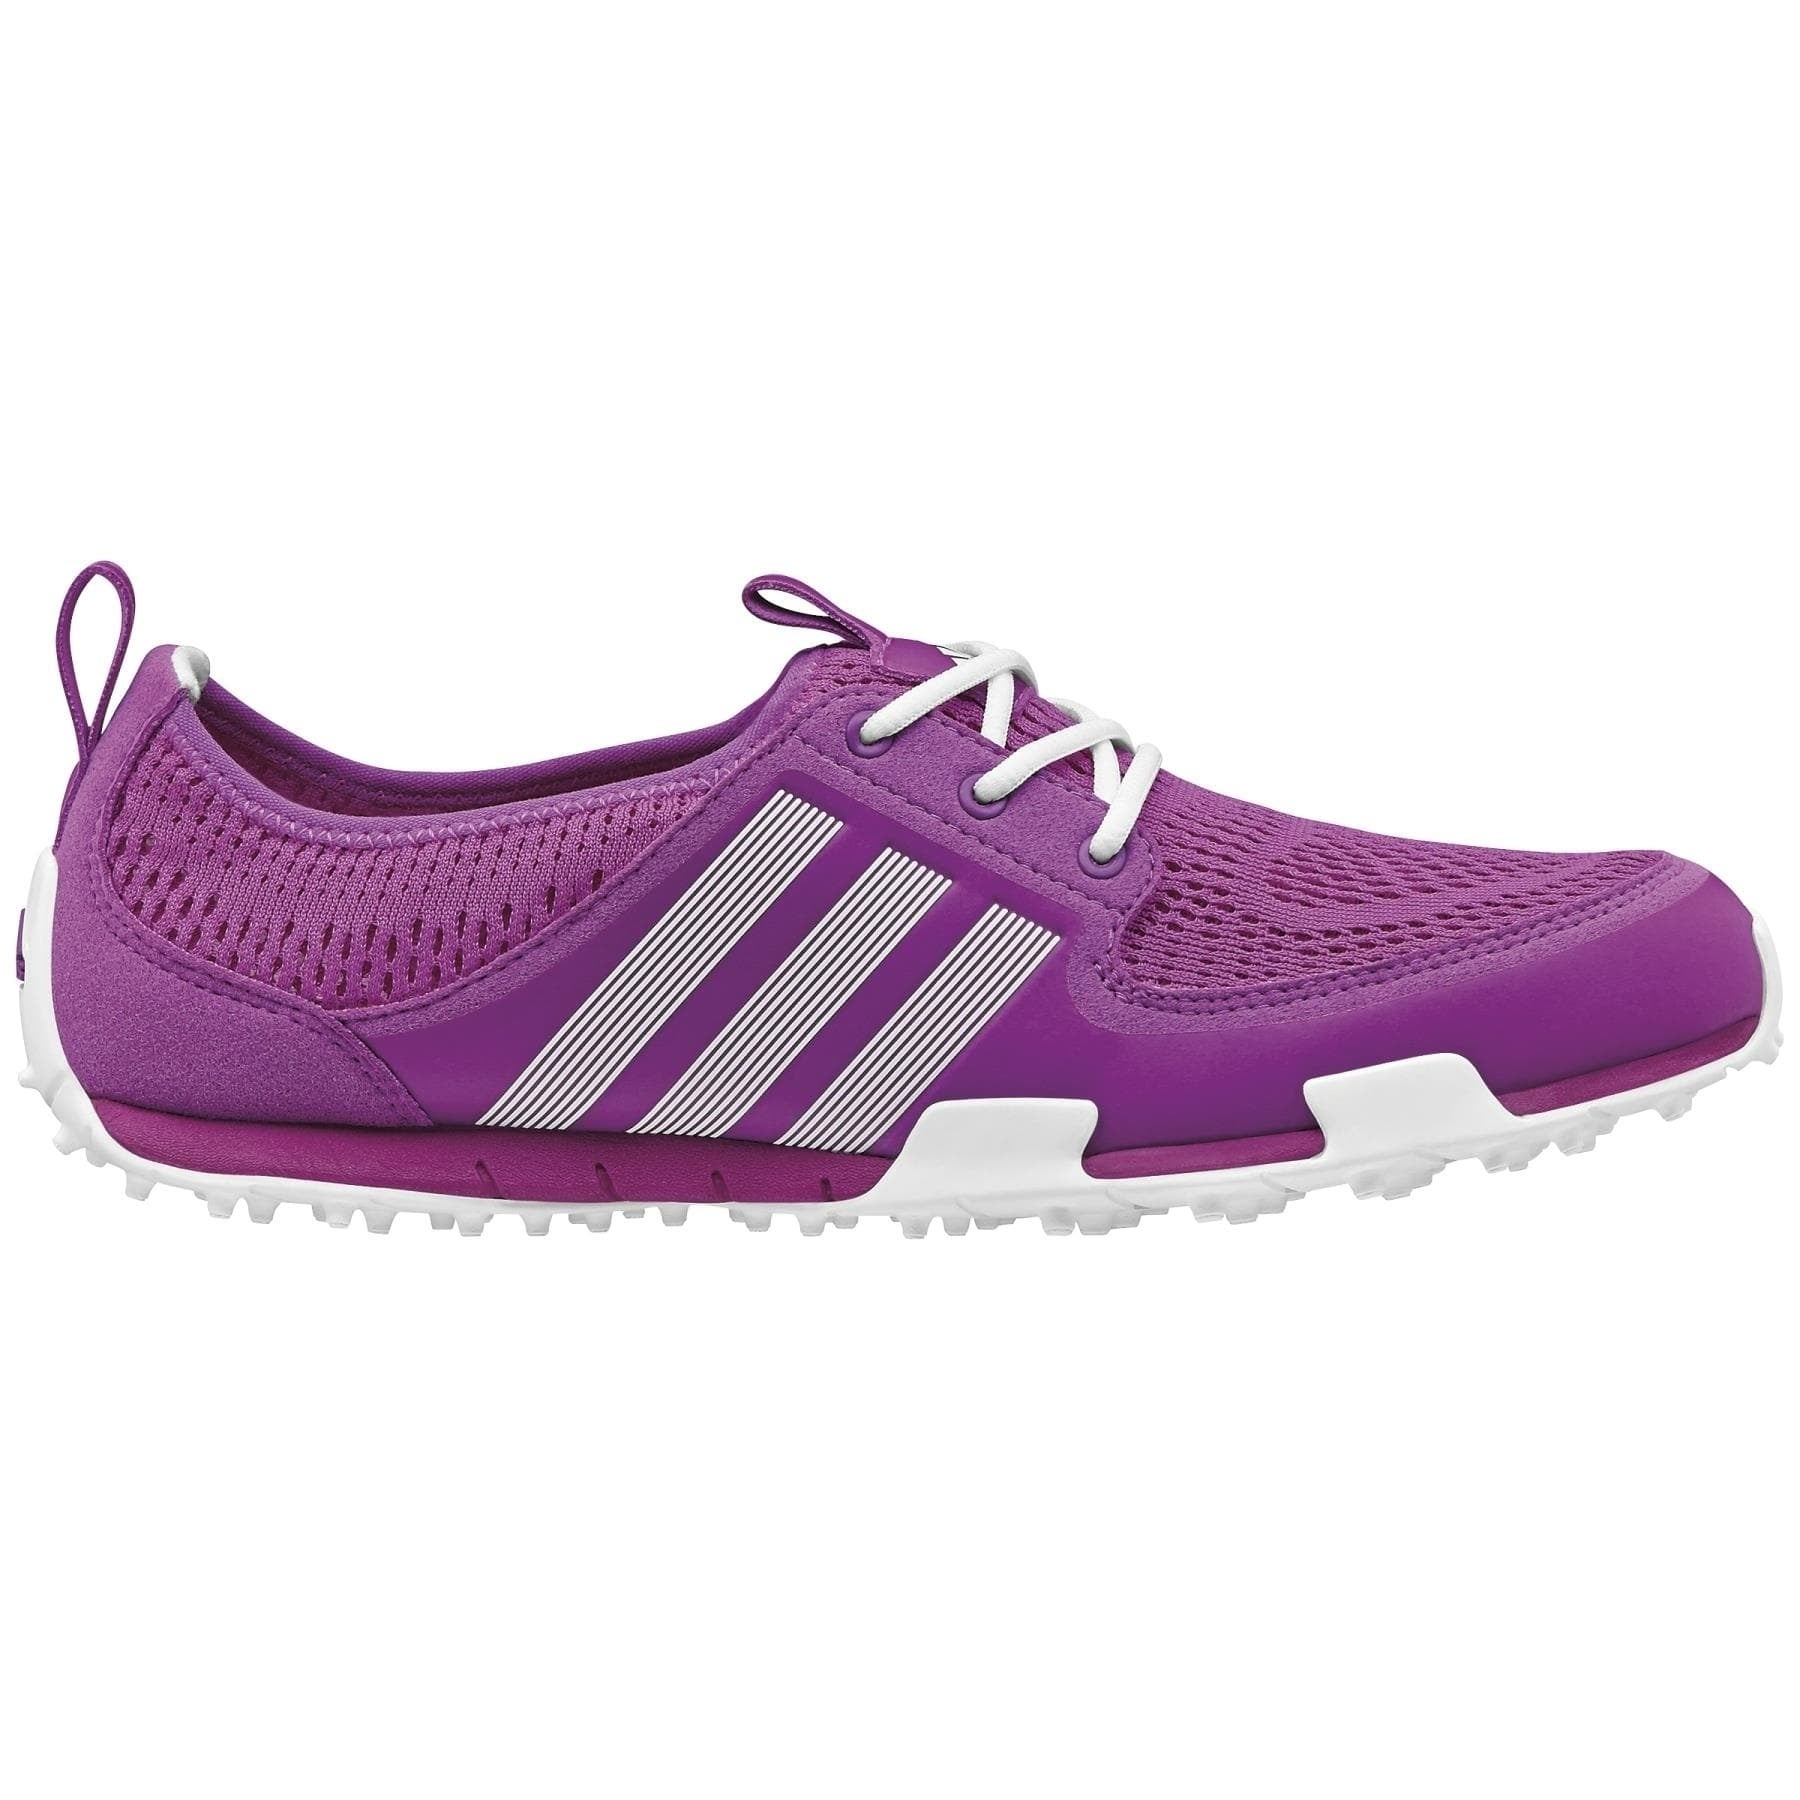 Buy Adidas Women s Golf Shoes Online at Overstock  685bfd148